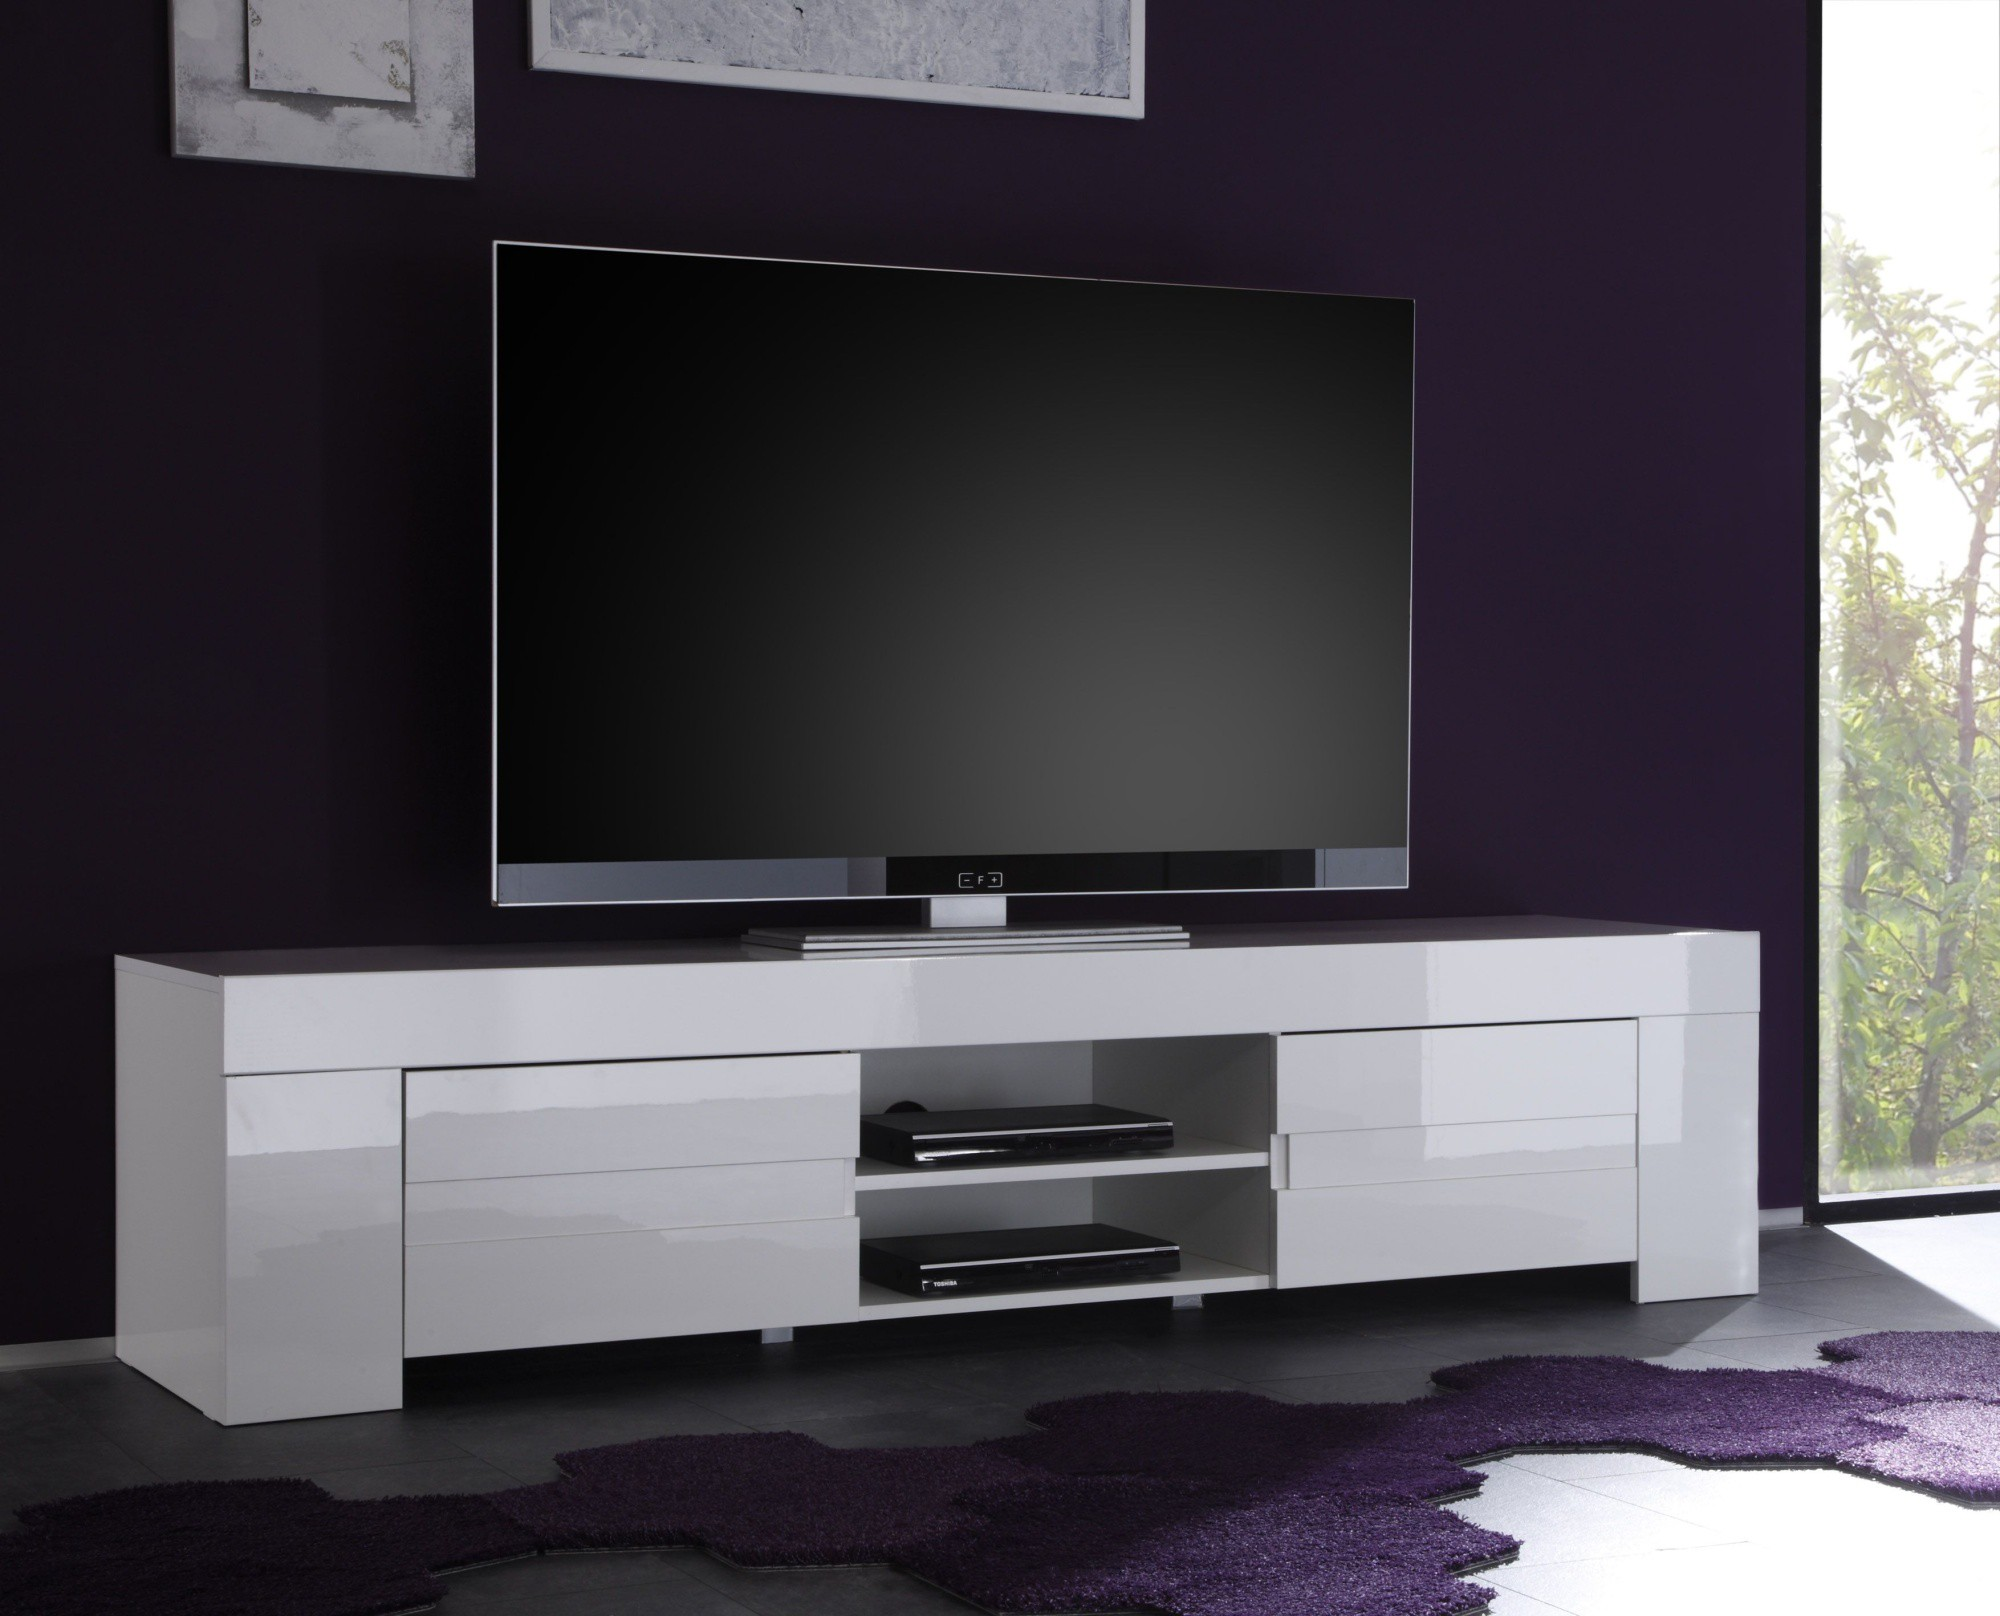 meuble tv en solde id es de d coration int rieure french decor. Black Bedroom Furniture Sets. Home Design Ideas